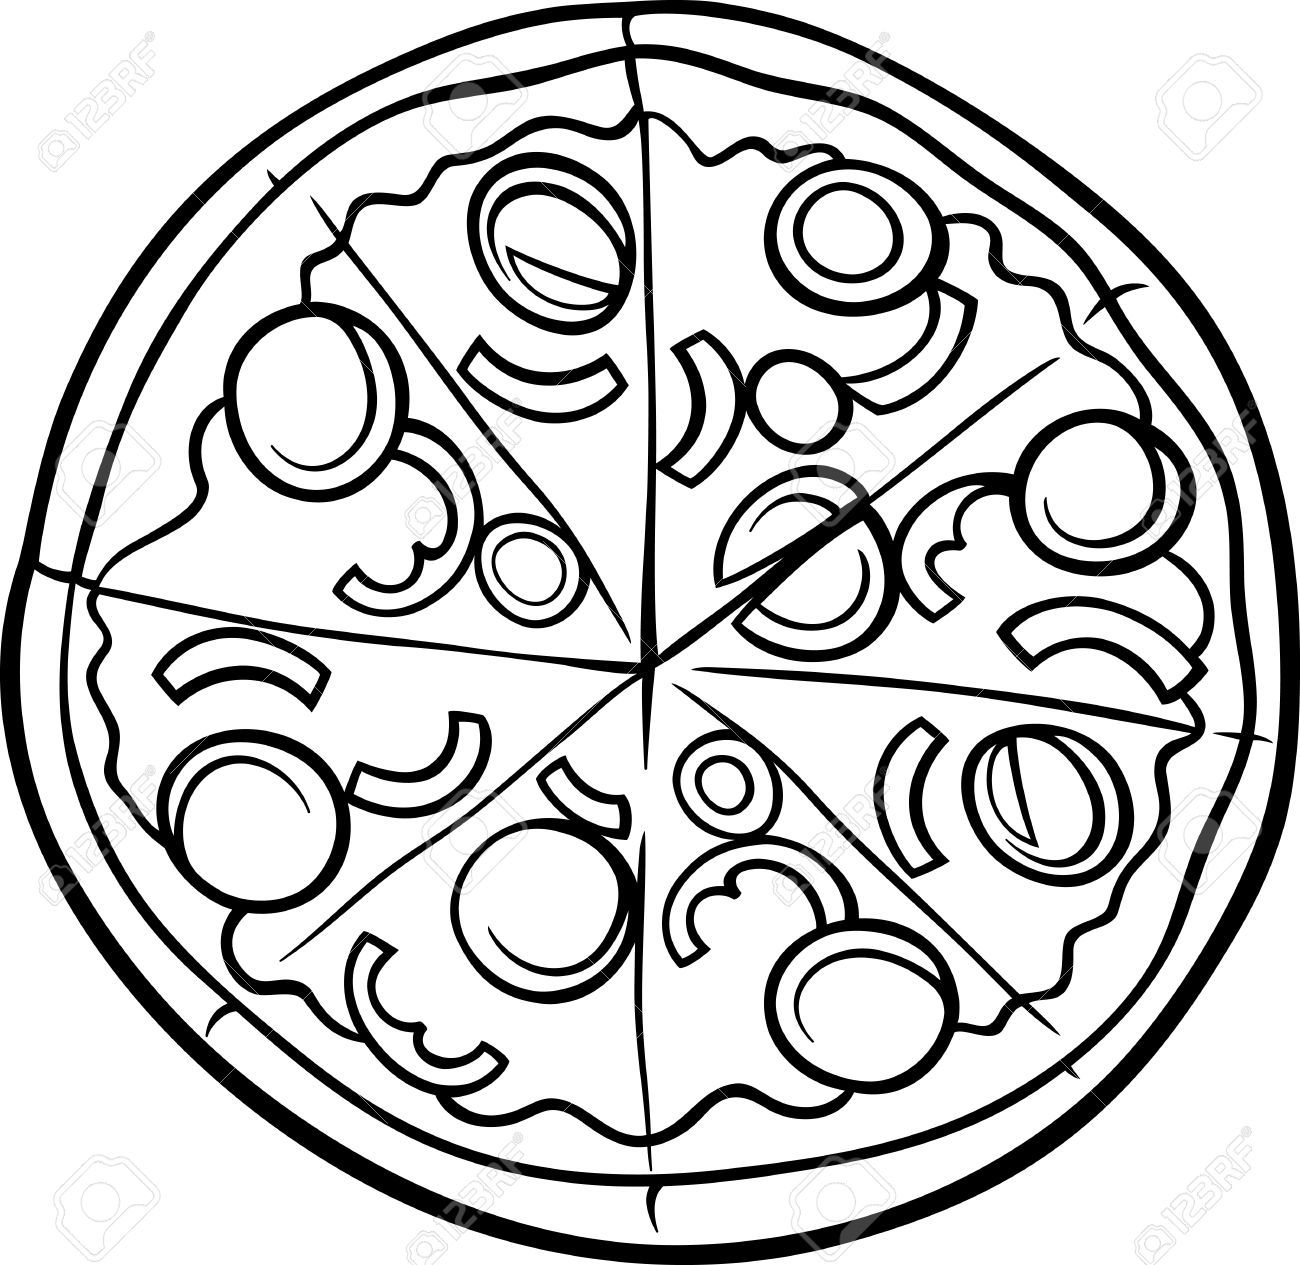 Free Clip art of Pizza Clipart Black and White #453 Best Square.